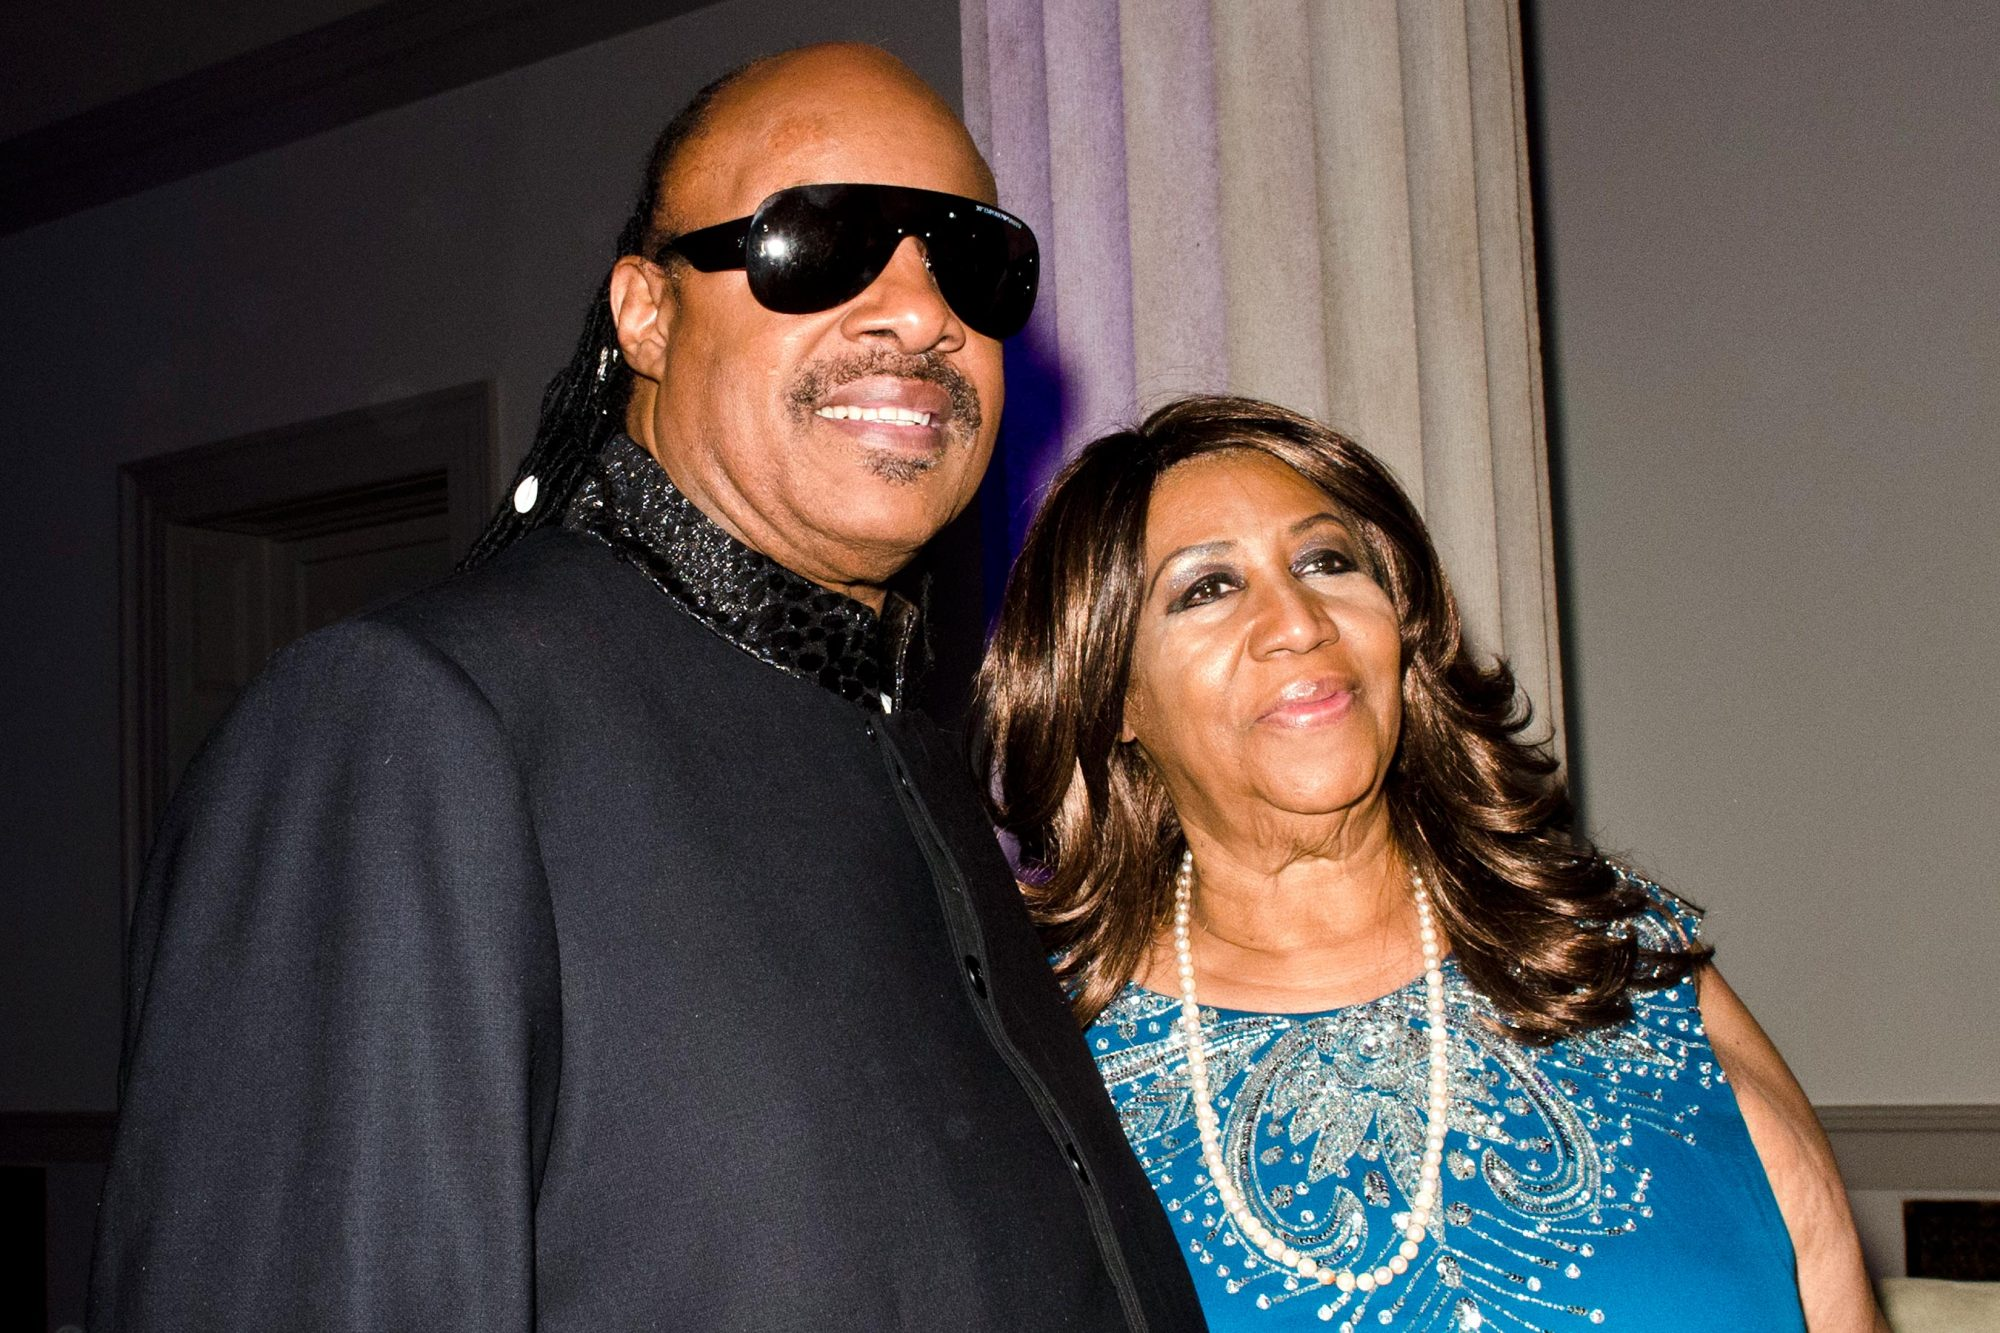 With Stevie Wonder during a BET Honors dinner at the Corcoran Gallery of Art in Washington, D.C., in 2012